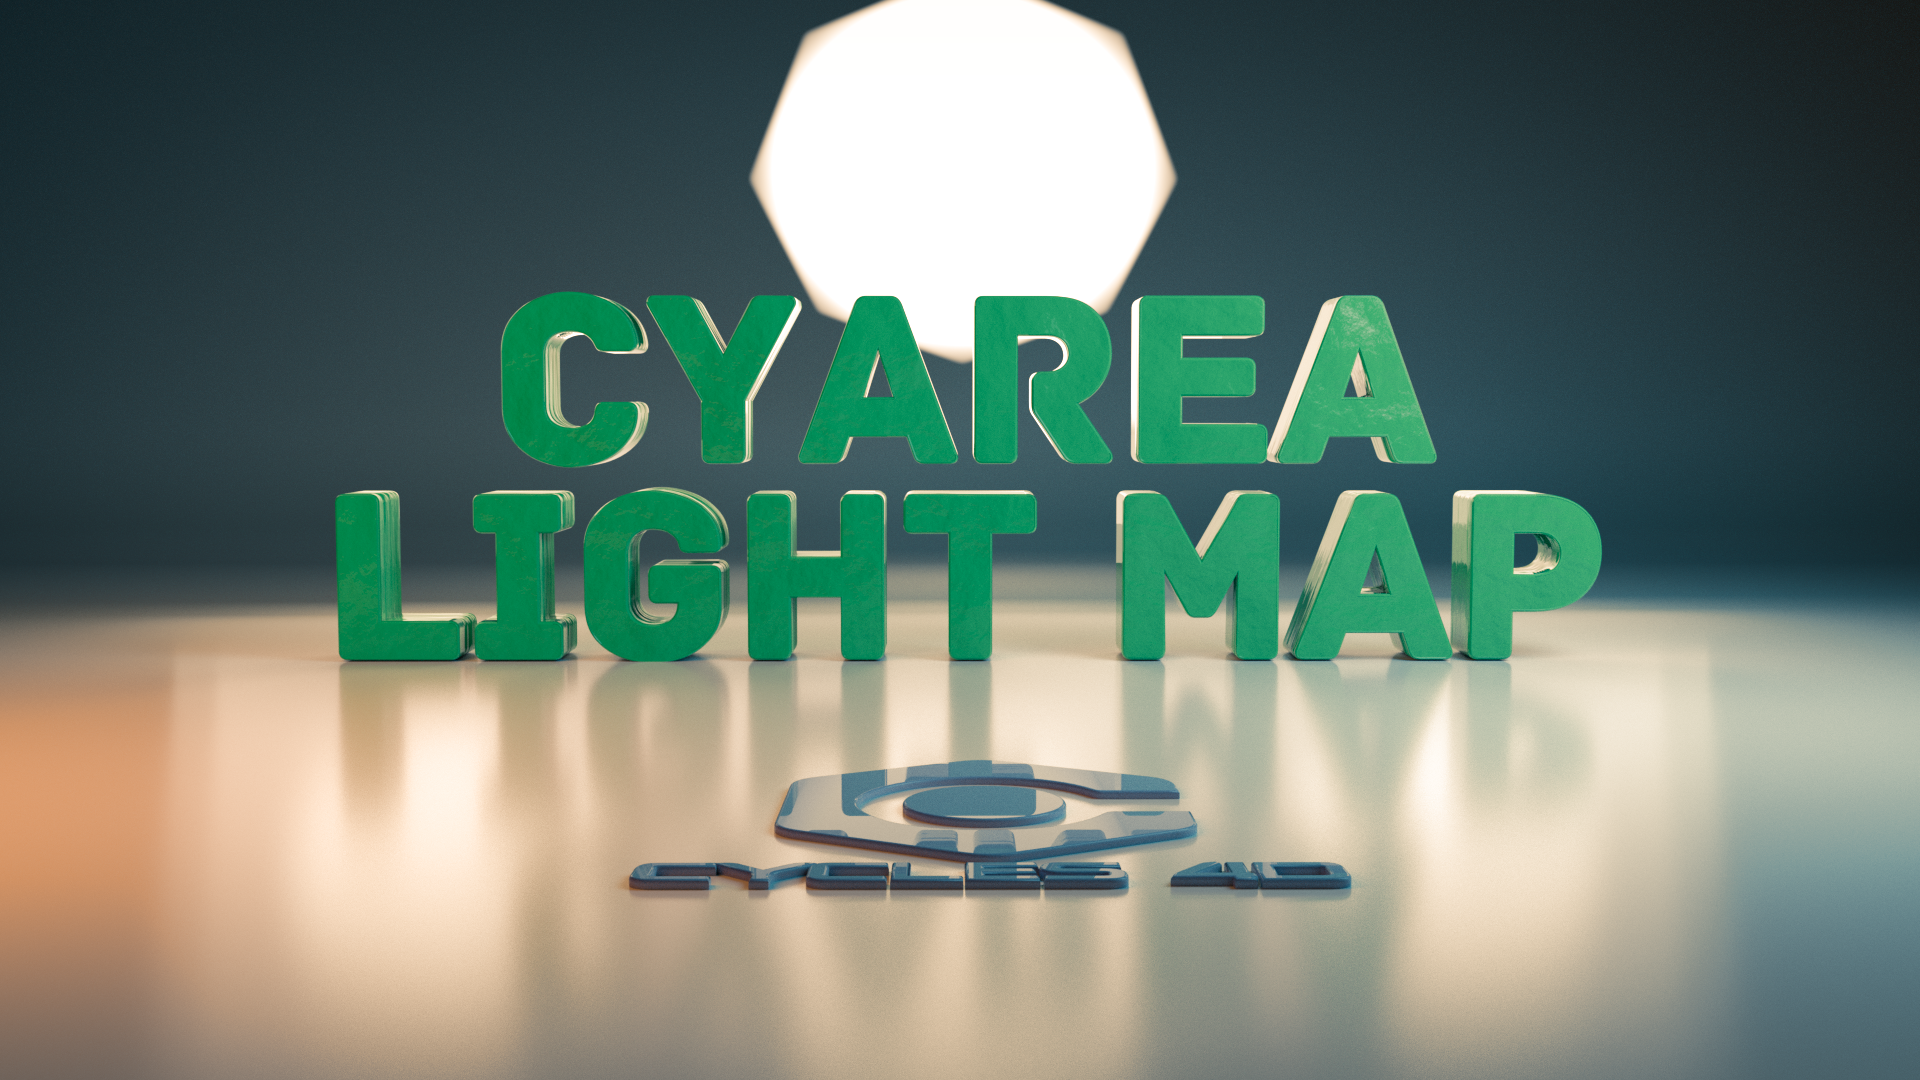 cyArea Light Map is a lighting rig for Cycles 4d from Insydium. You can use a combination of Cycles 4D area lights and HDRI images within the same rig.  The rig comes with ten basic HDRI lights to get you up and running. Click on the image to find out more.